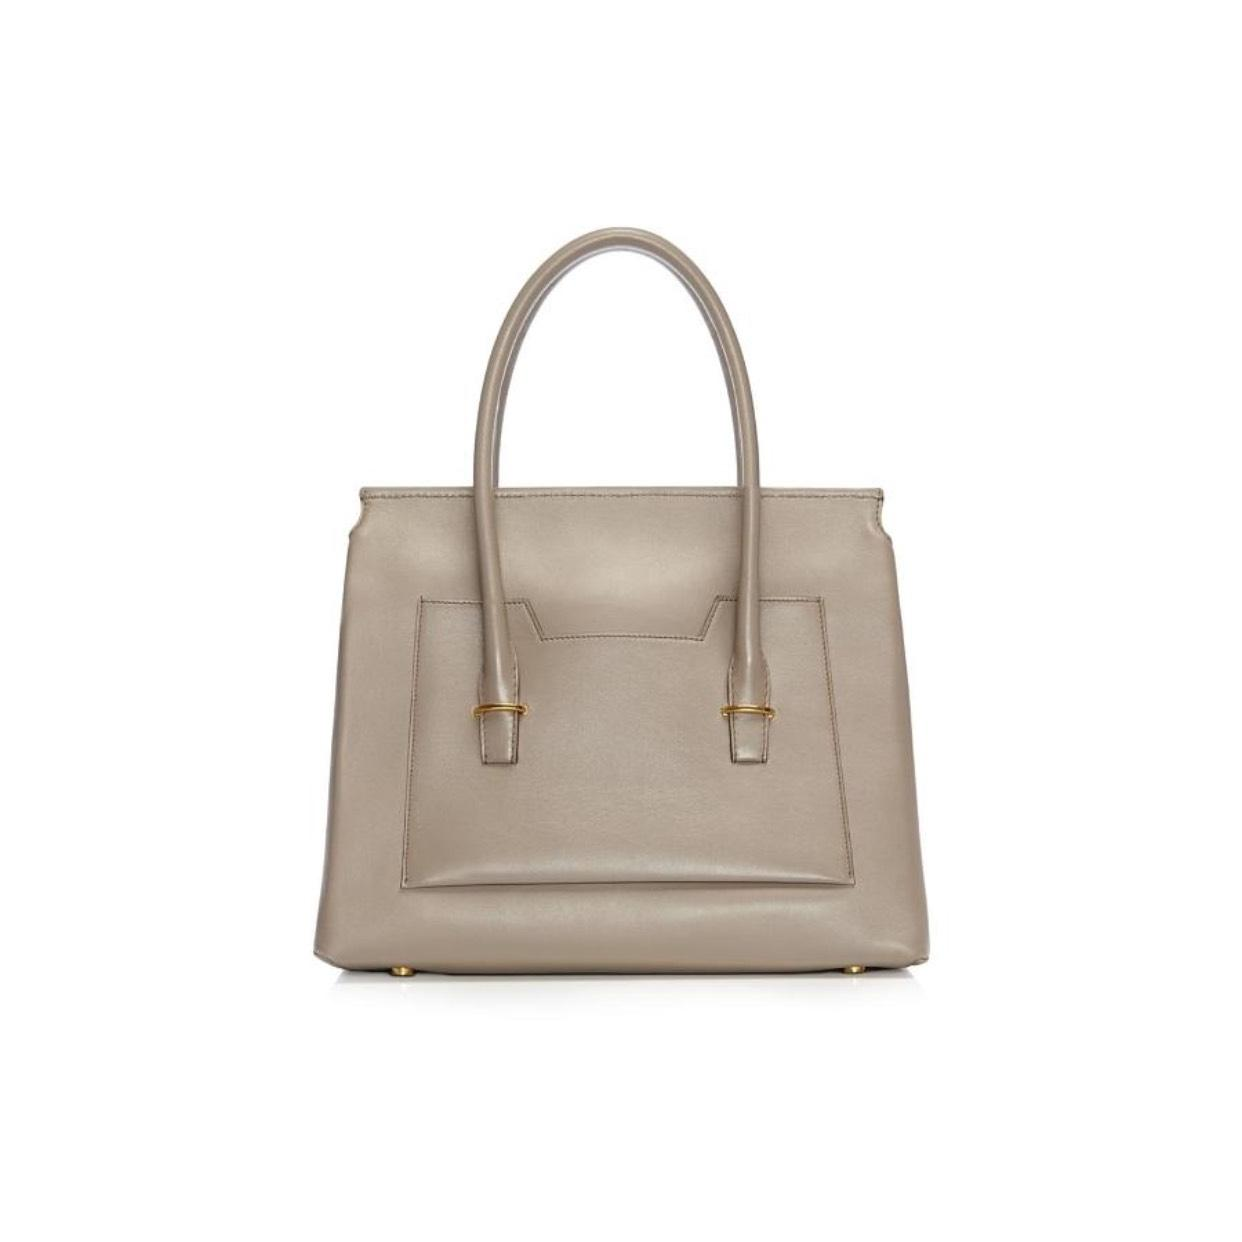 Tom Ford Icon Taupe Tote Bag on Sale, 46% Off | Totes on Sale